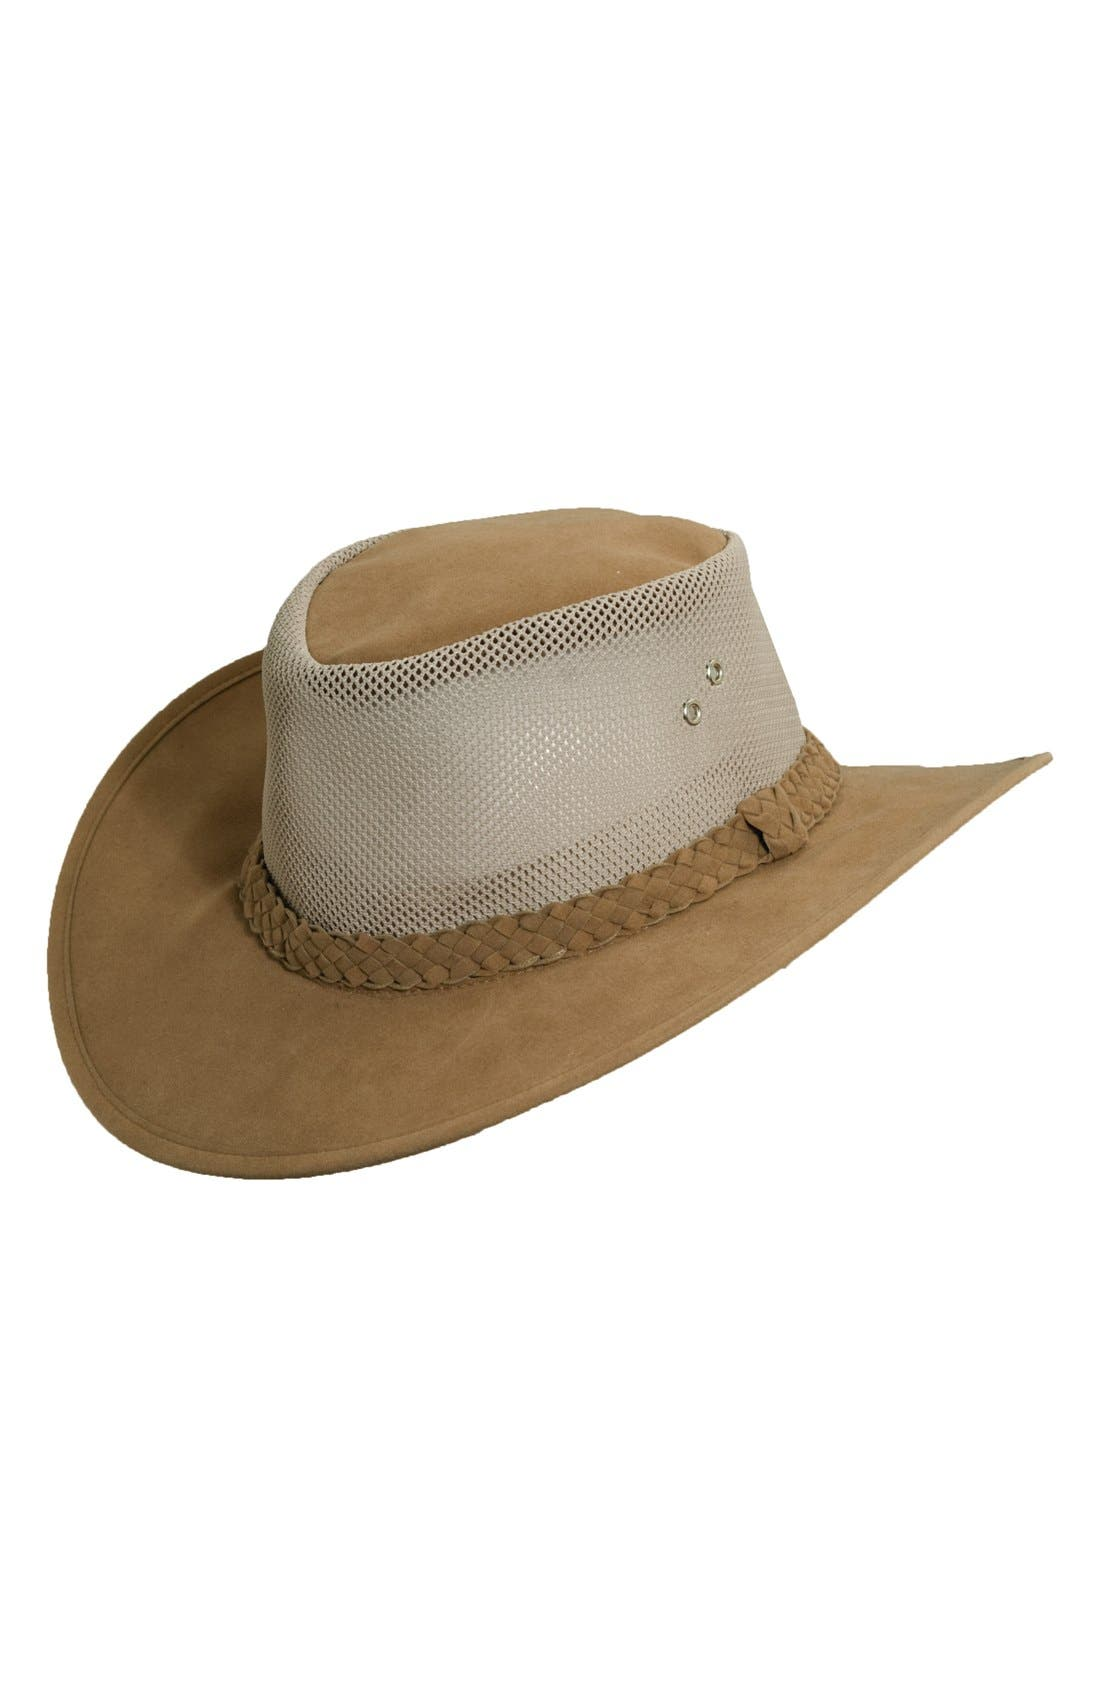 Soaker Hat,                         Main,                         color, Tan